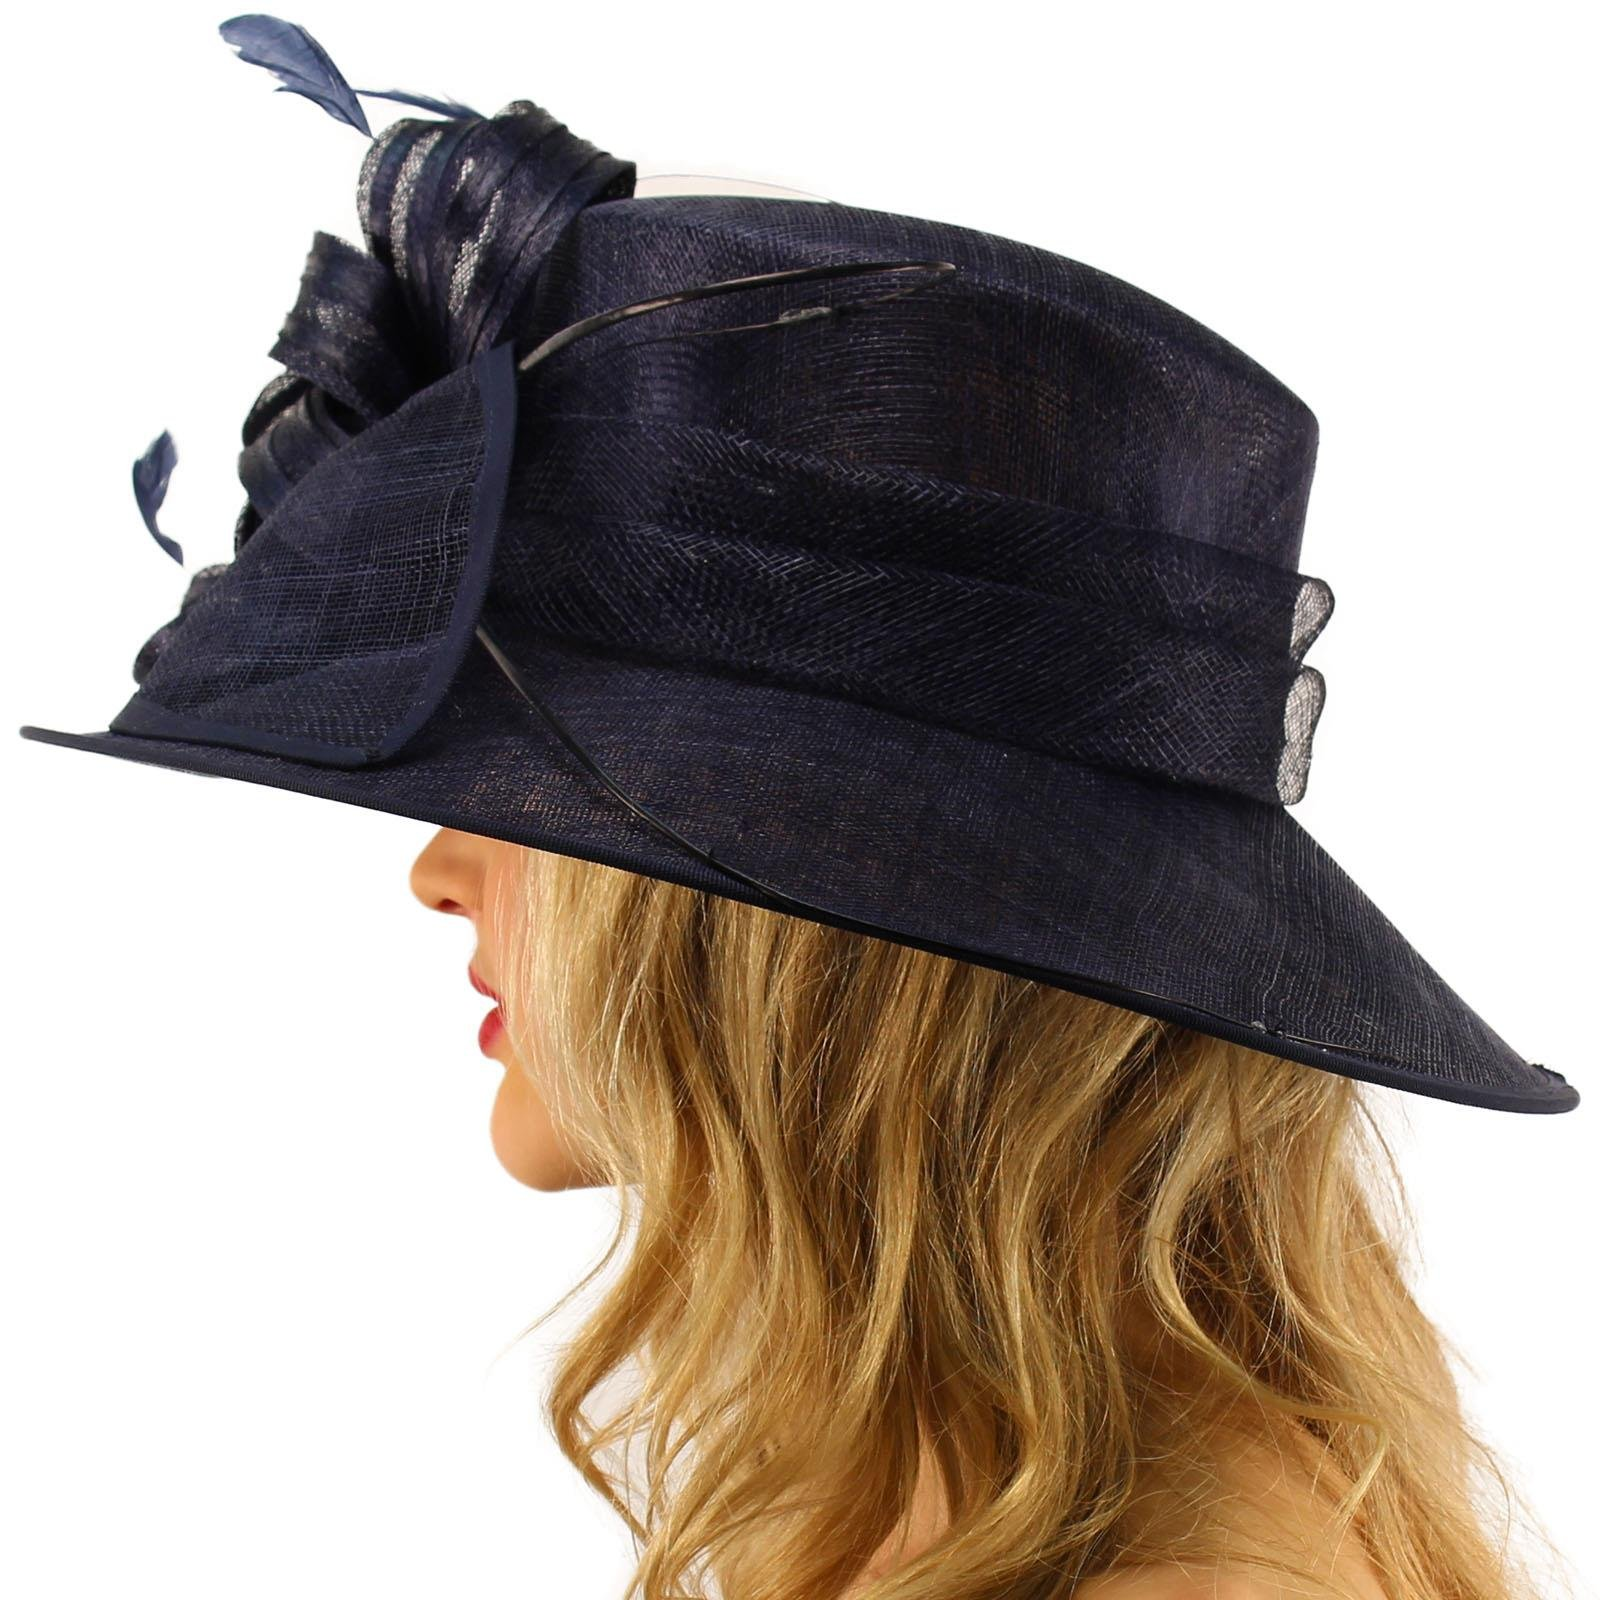 British Regal Sinamy Ribbon Feathers Quill Derby Floppy Bucket Dressy Hat Navy by SK Hat shop (Image #3)